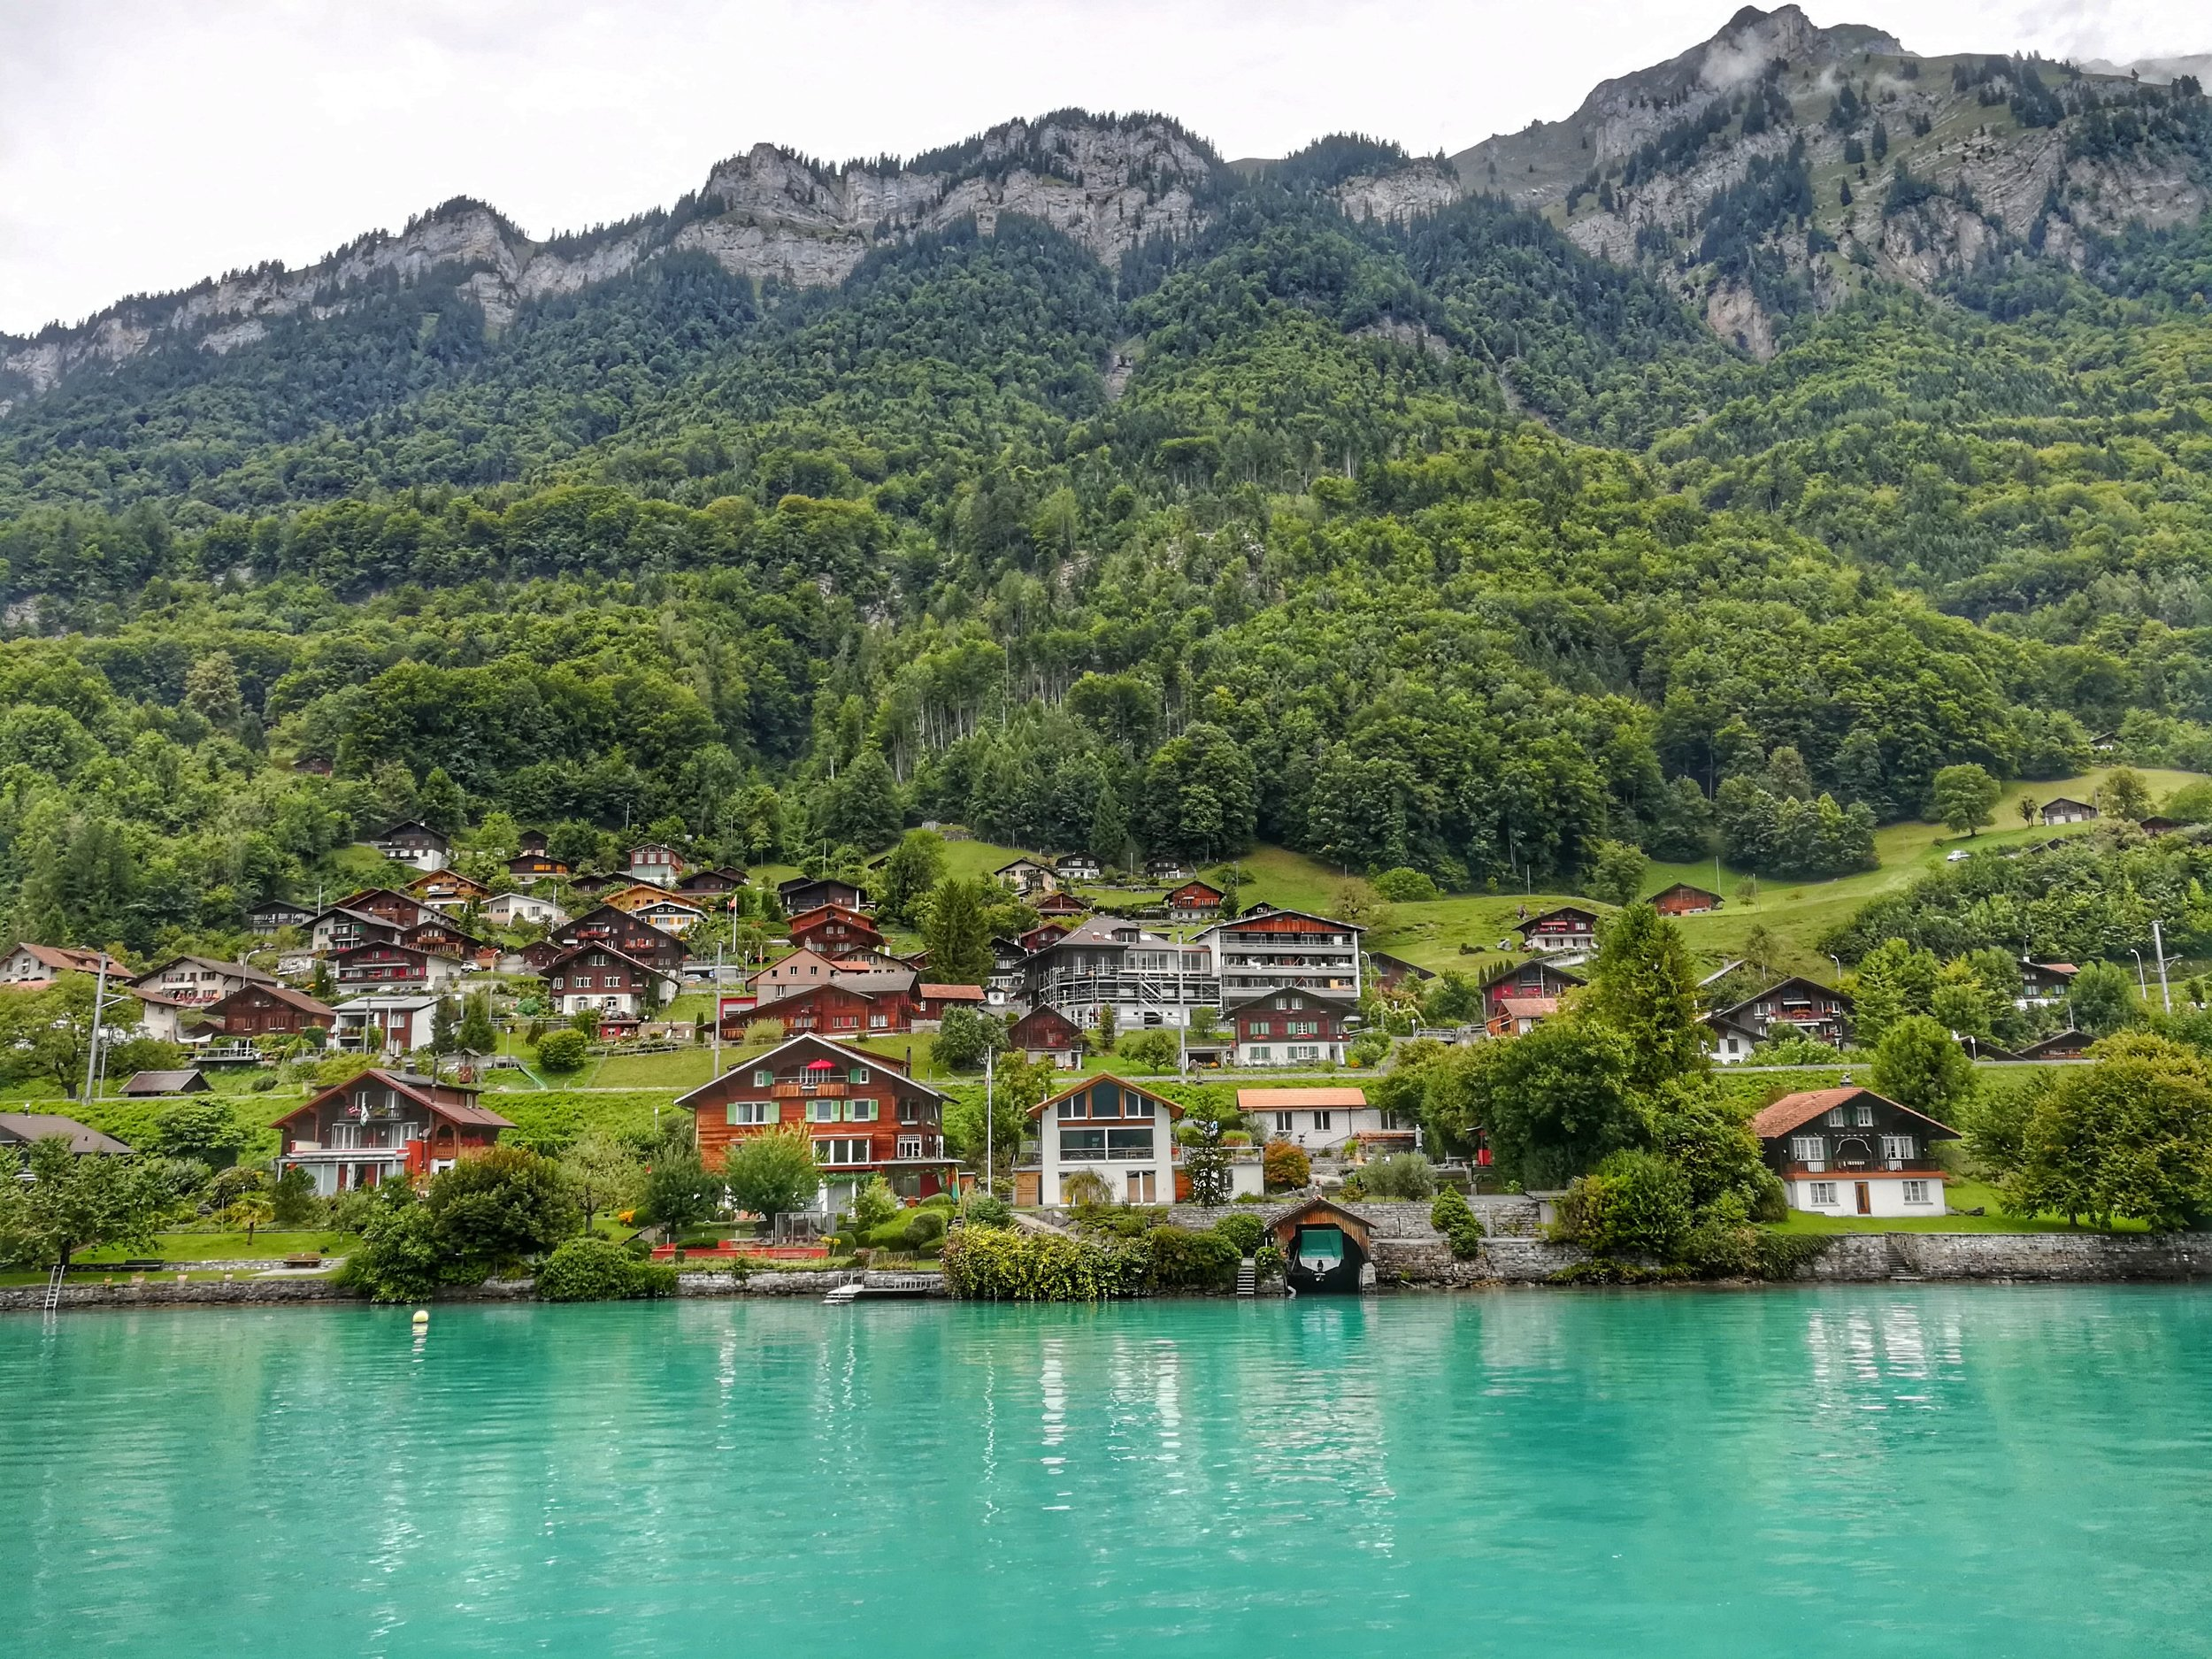 Quaint towns in the side of the lake